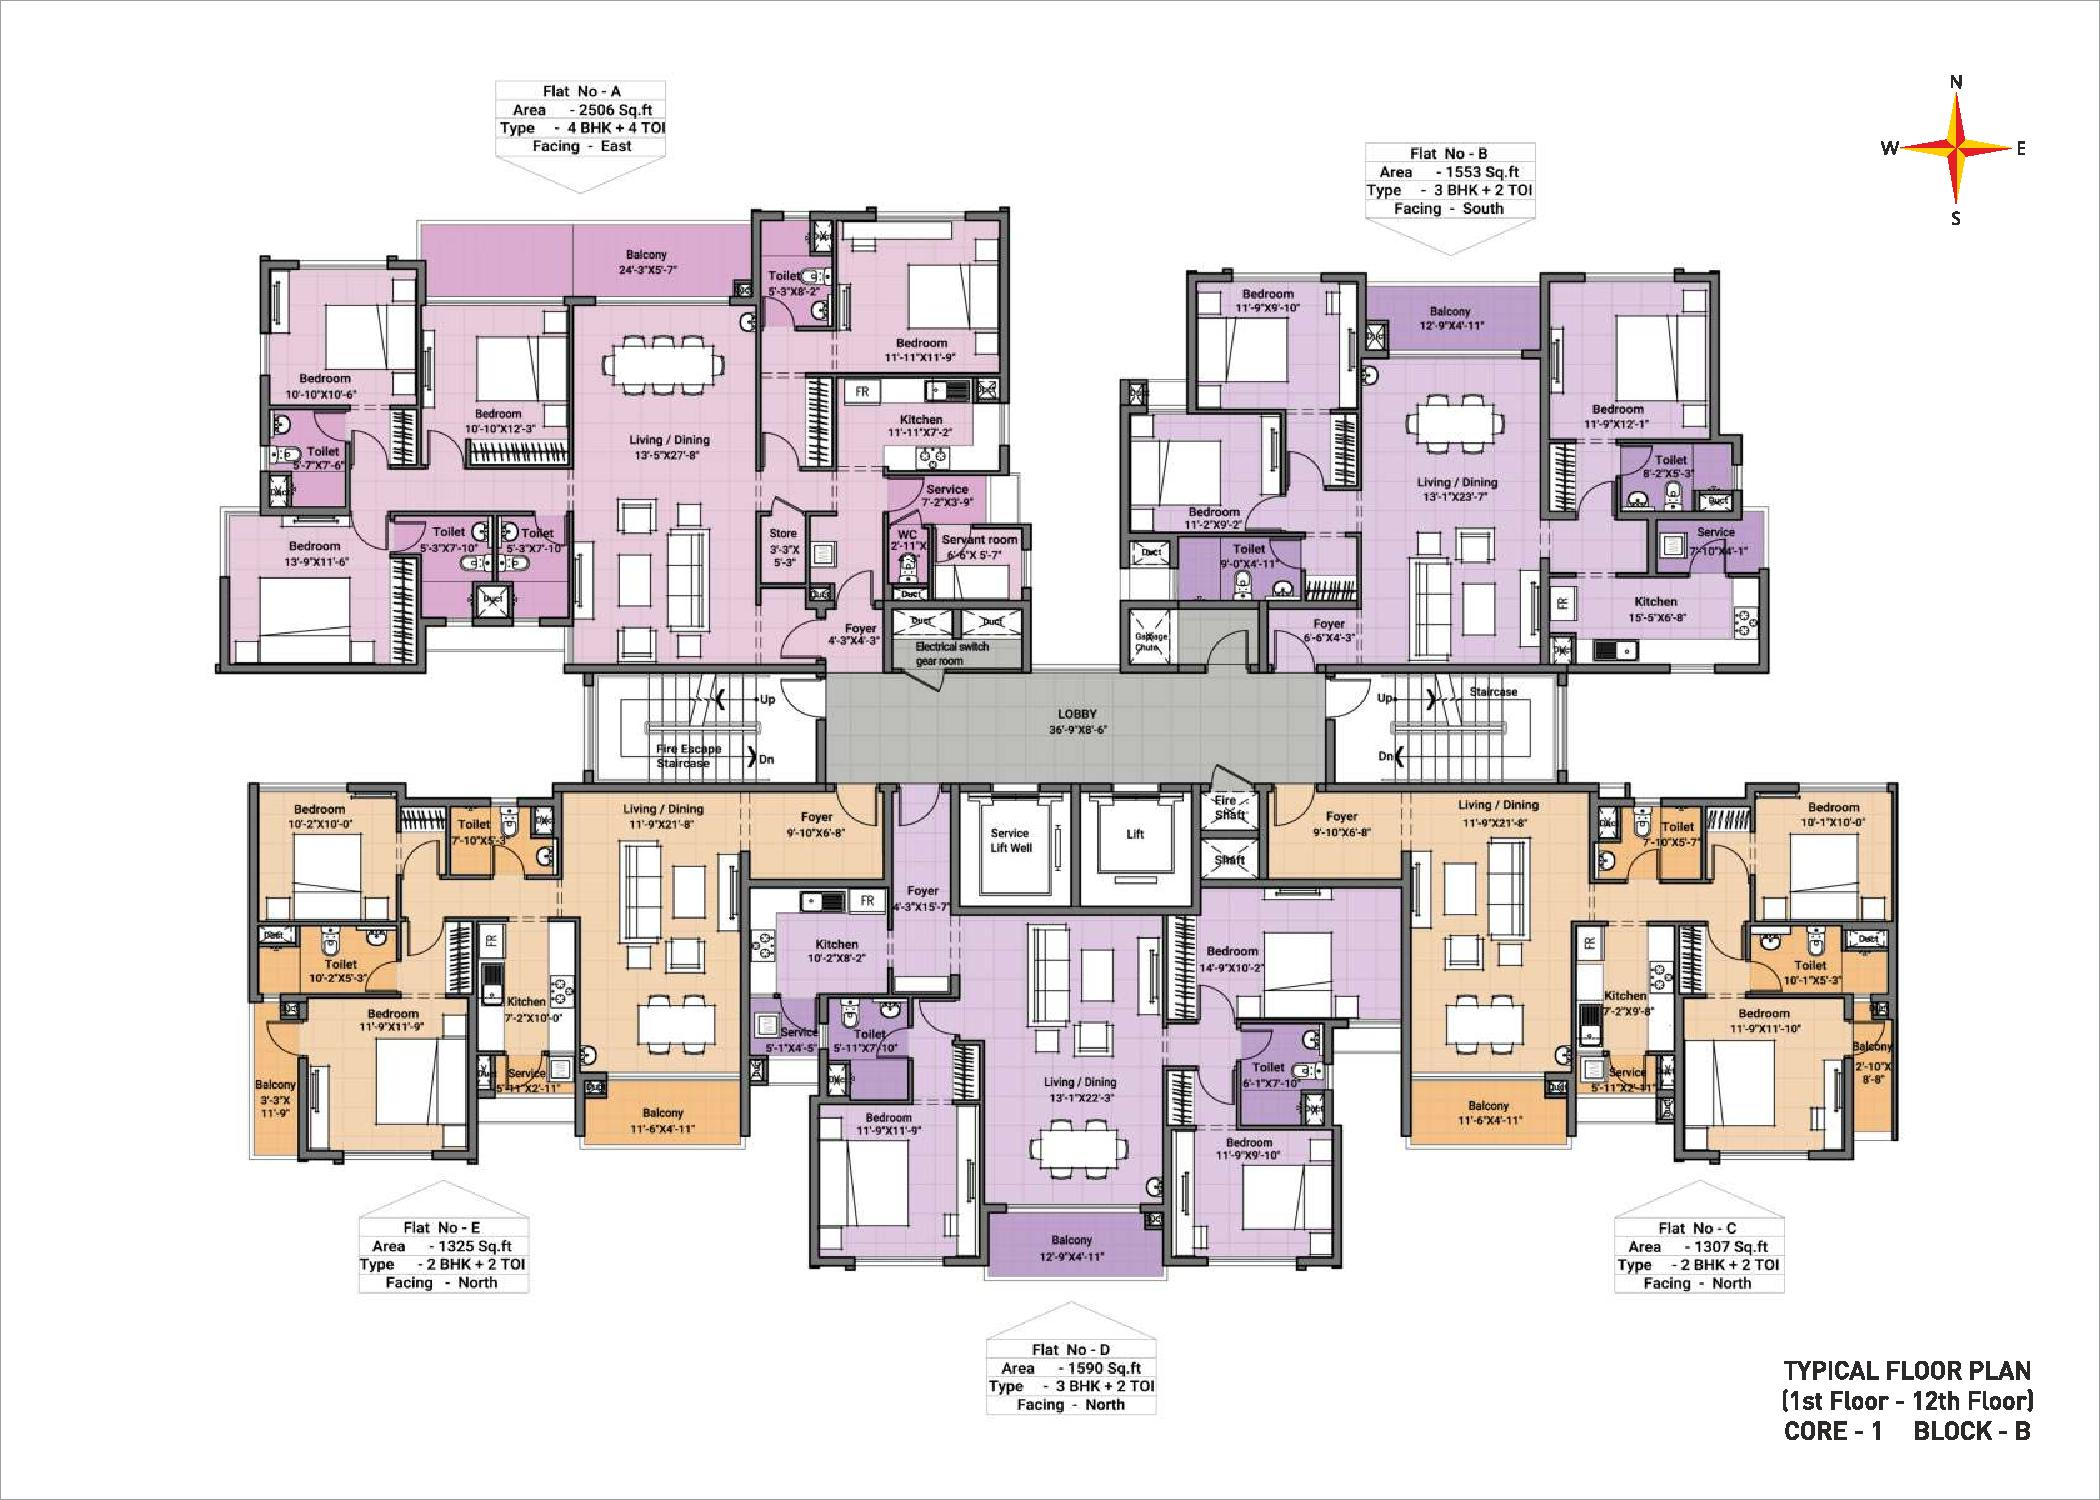 Typical floor plan - Block B Core 1(1-12th floor)